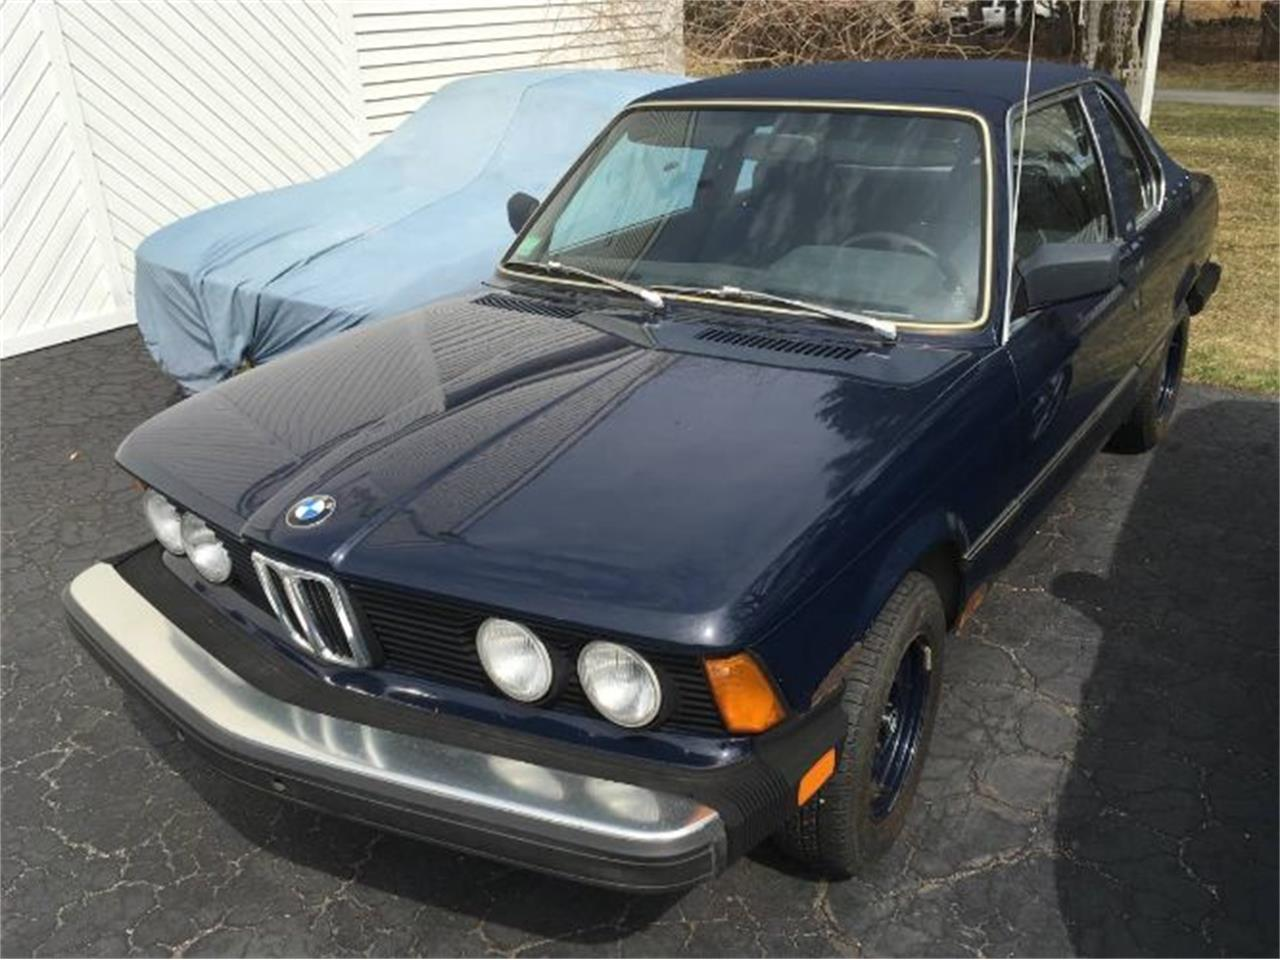 For Sale: 1983 BMW 325i in Cadillac, Michigan